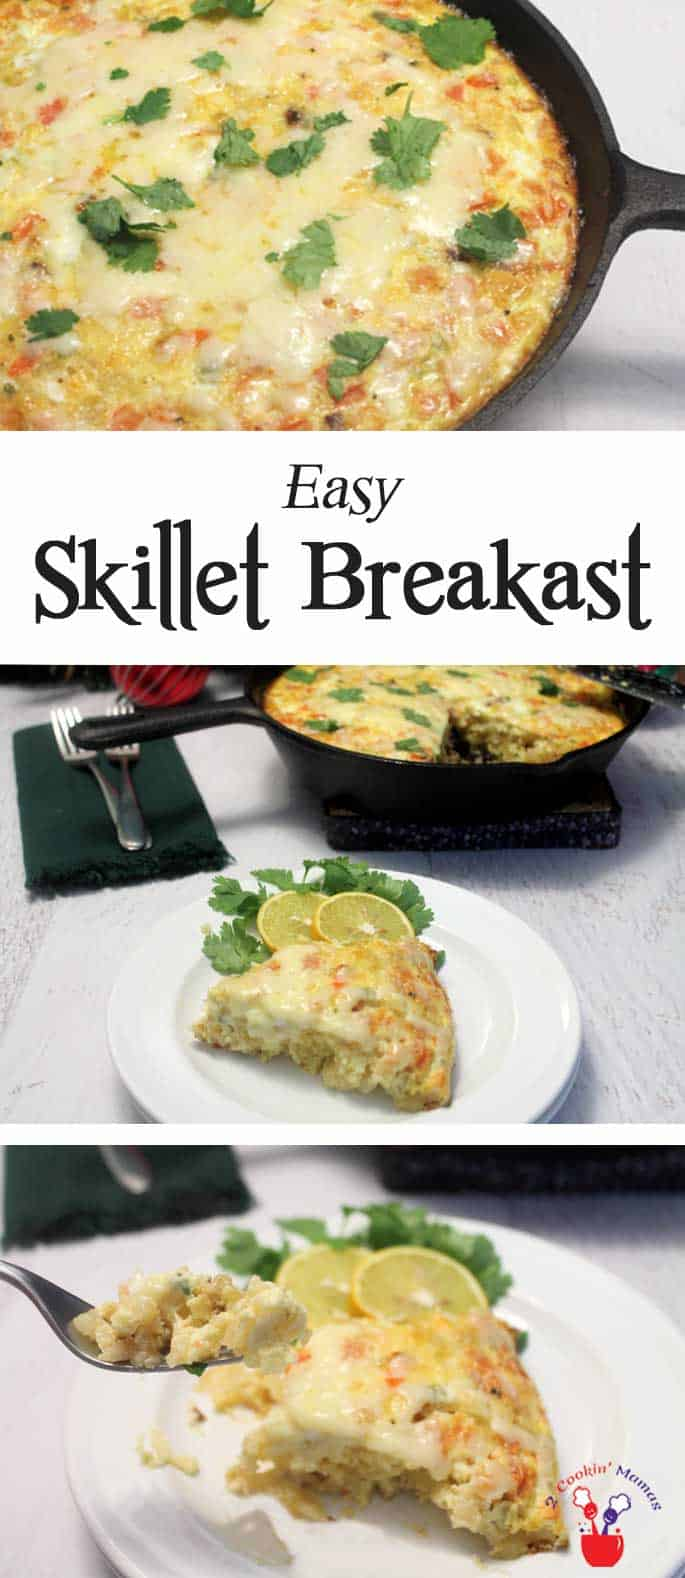 Easy Breakfast Skillet   2 Cookin Mamas A deliciously filling & easy breakfast skillet that's made all in one pan. All you need are 6 ingredients - bacon, eggs, cheese, hash browns, salsa and milk. So easy to make, just mix and bake. #recipe